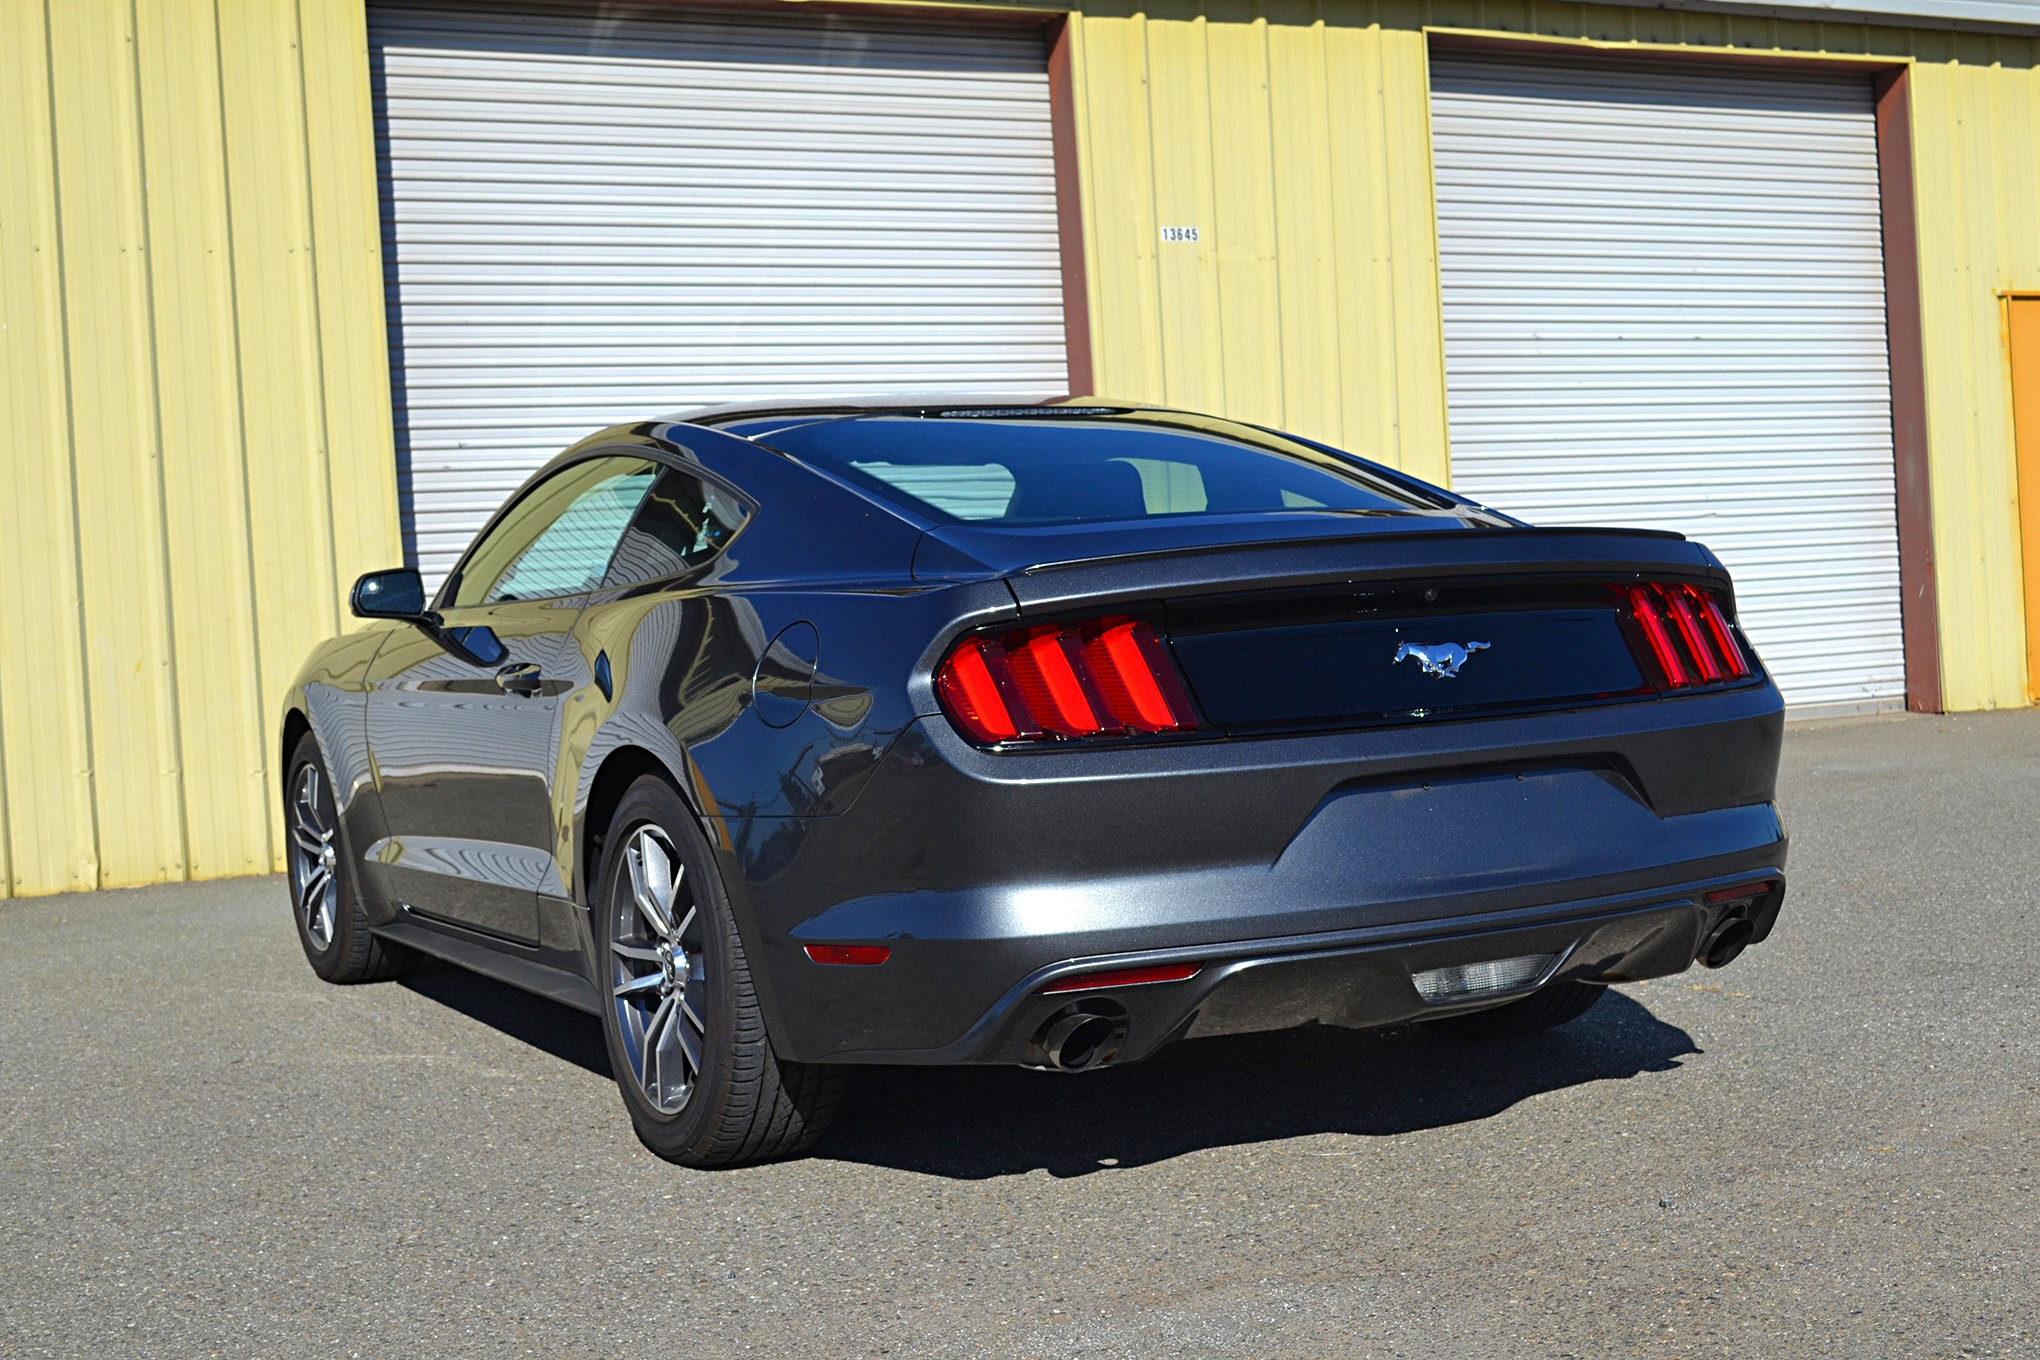 029_Ecoboost_Mustang_dragstrip_rear_side.JPG